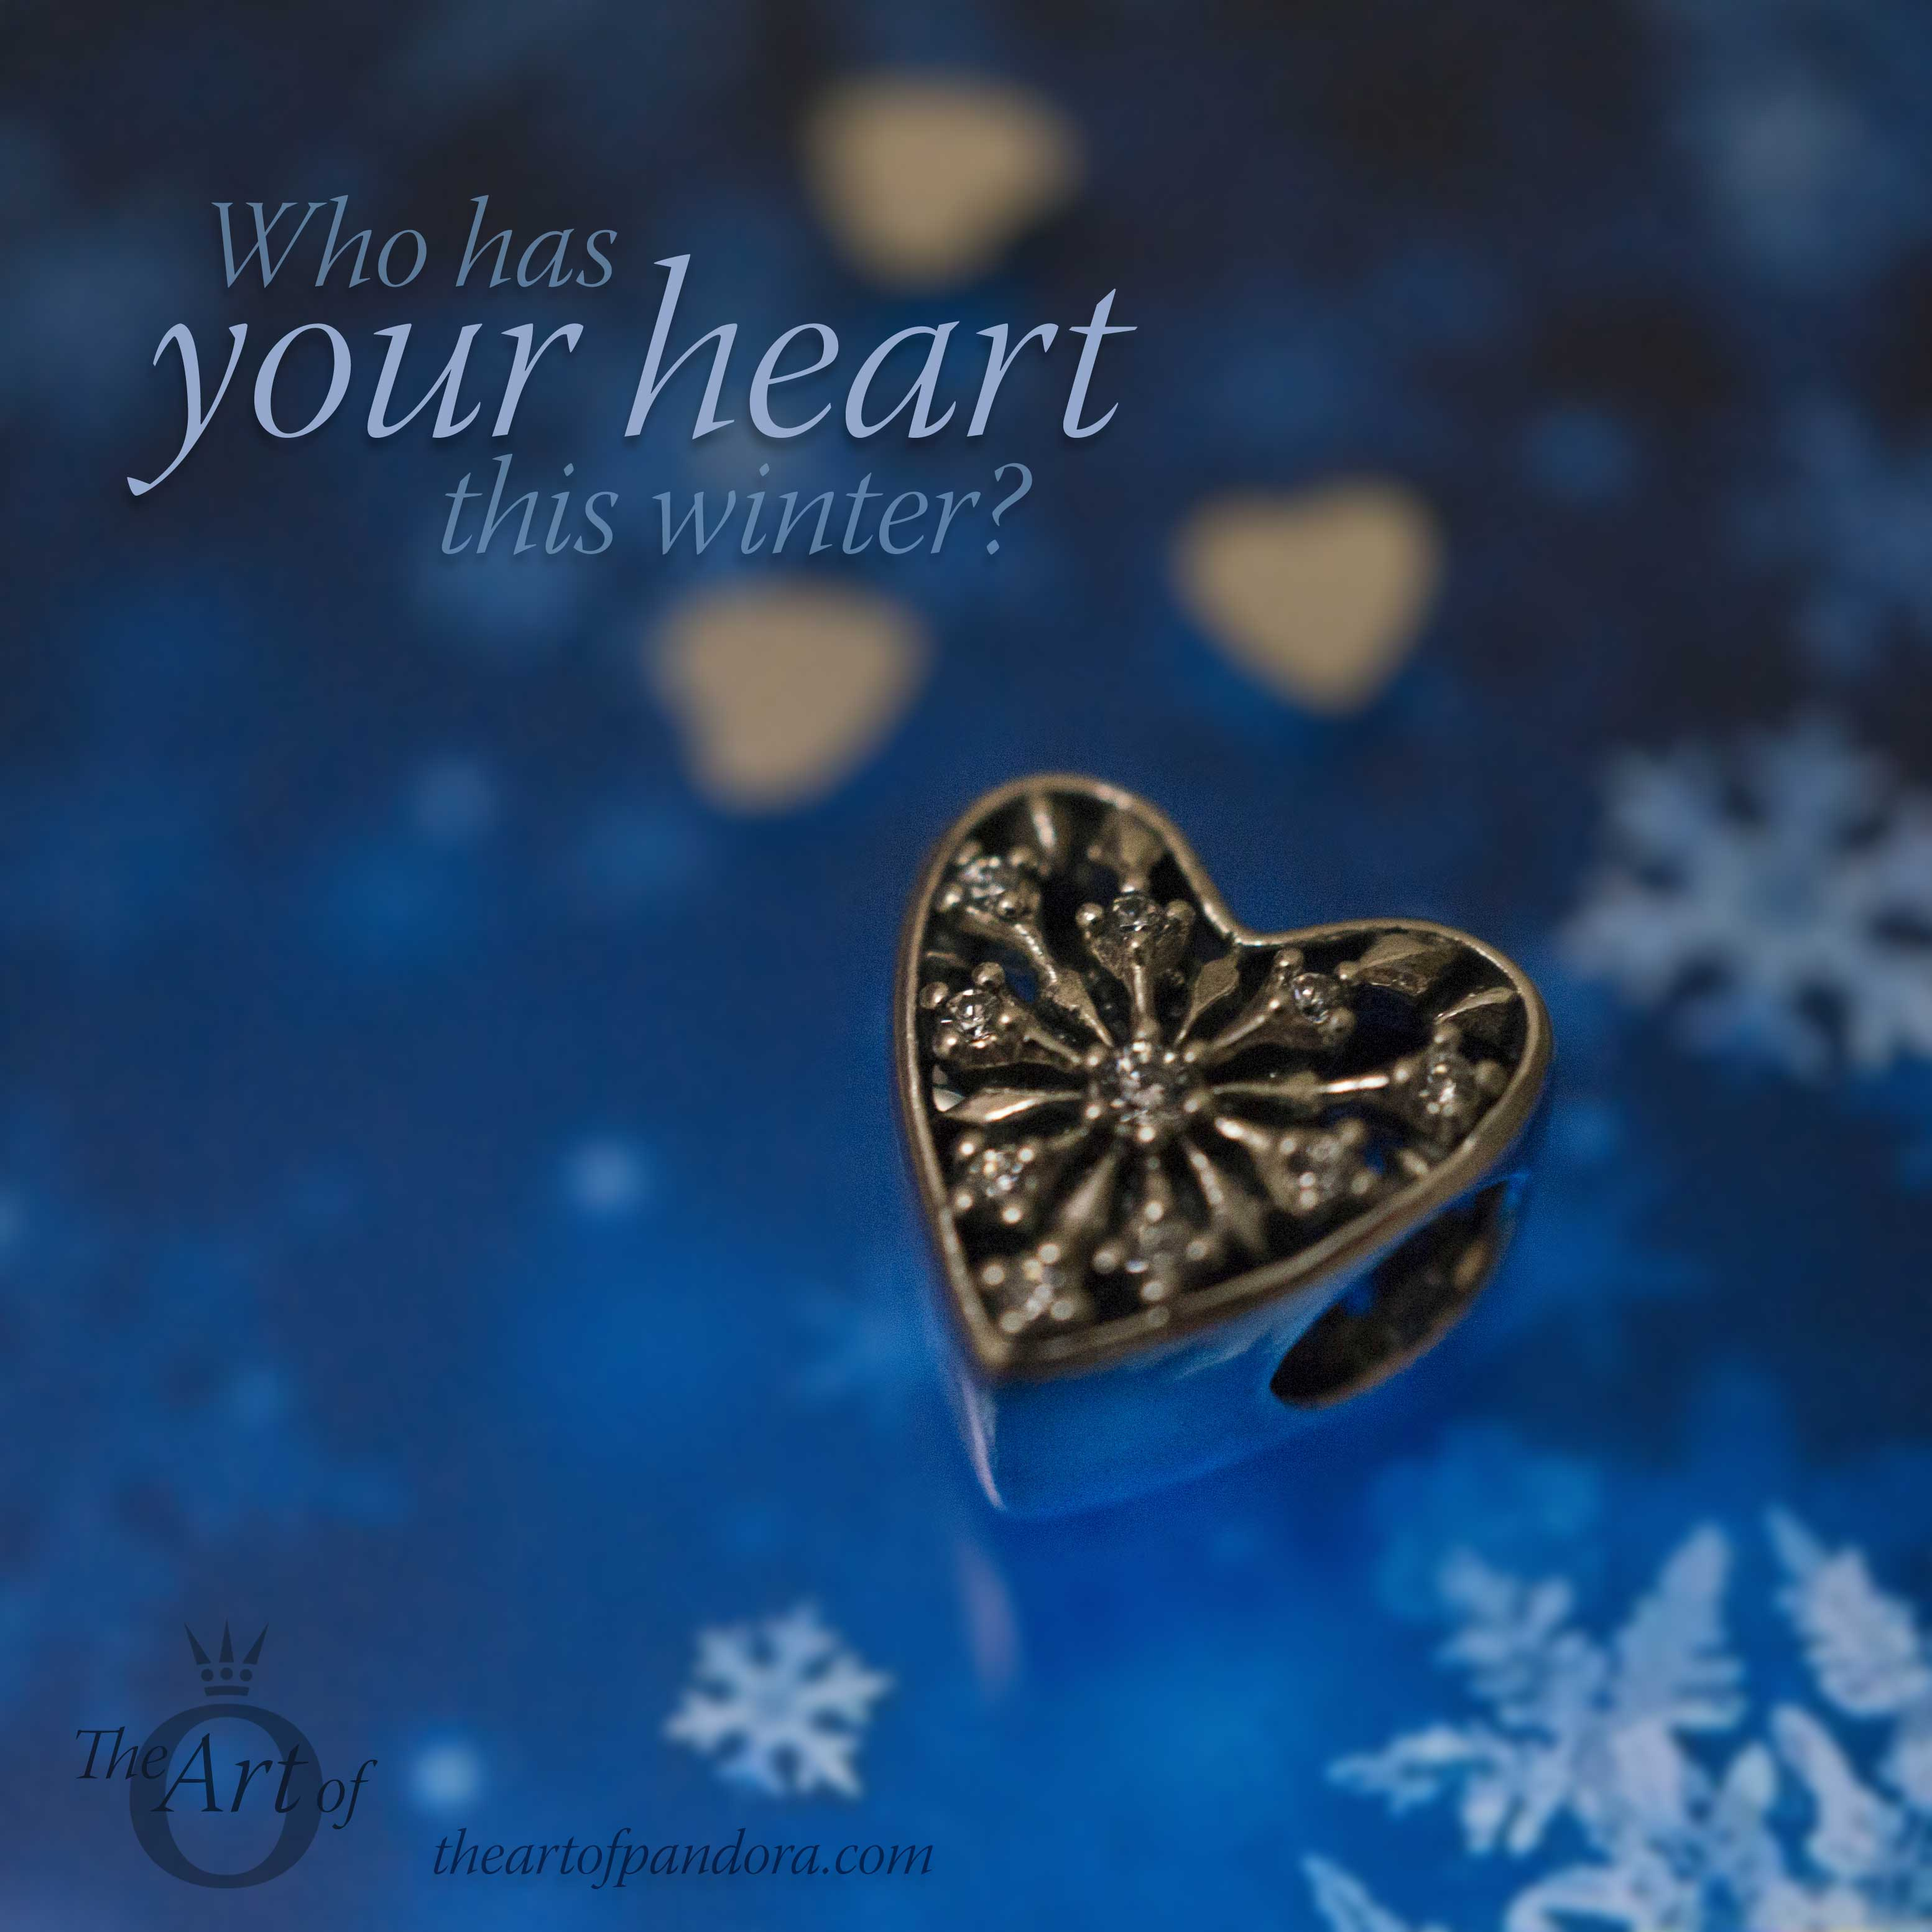 who has your heart this winter pandora competition theartofpandora